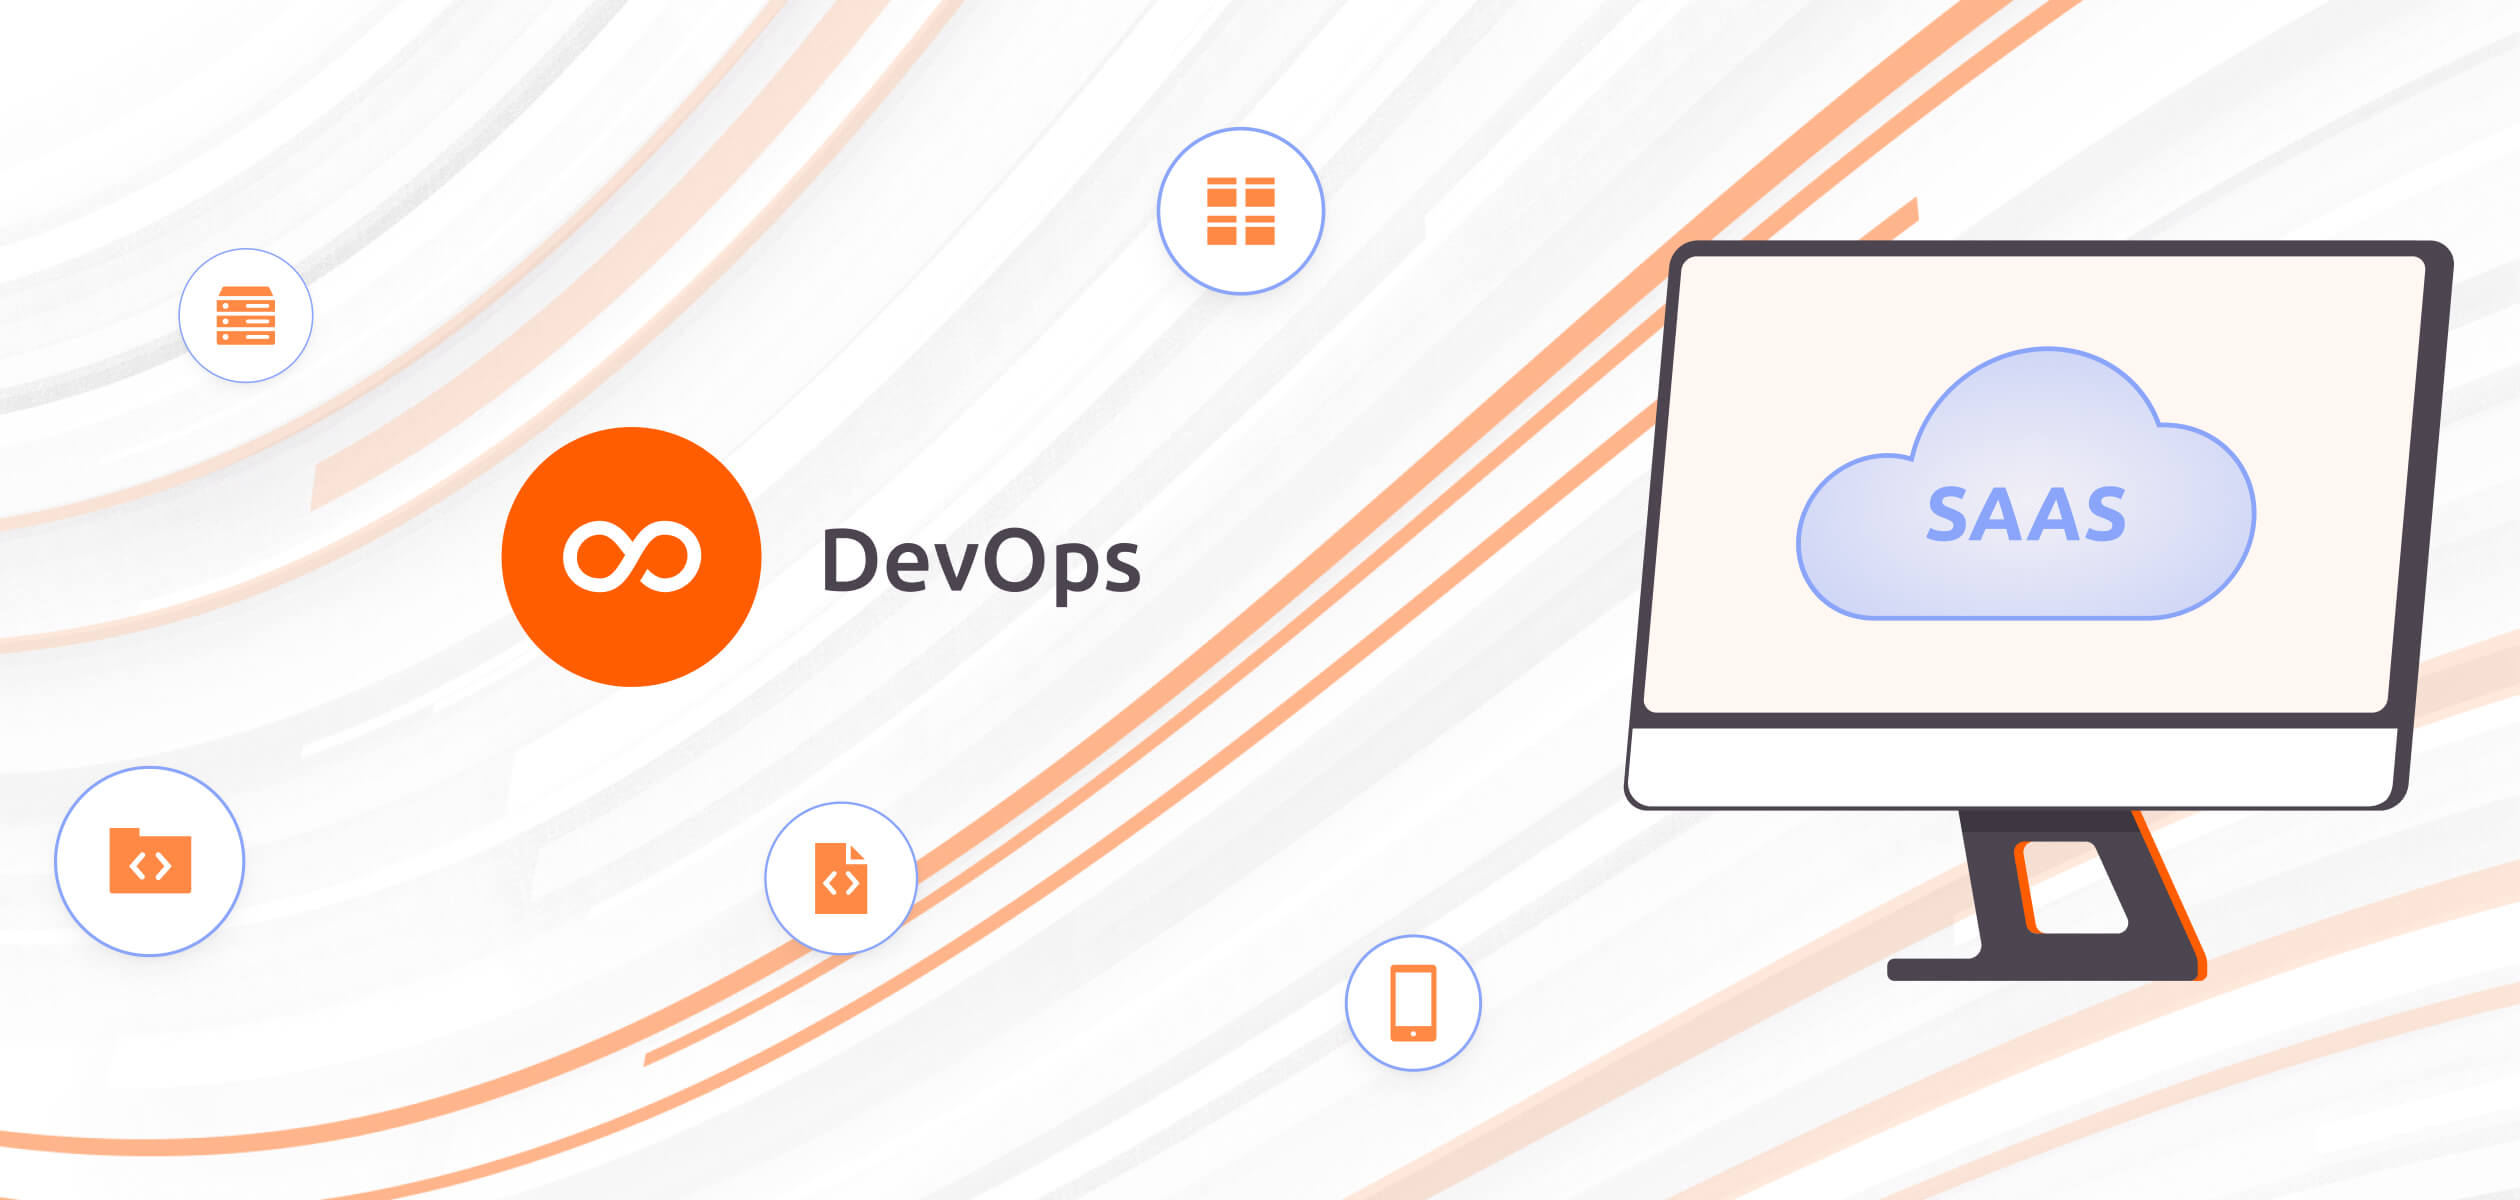 SaaS product with DevOps solution